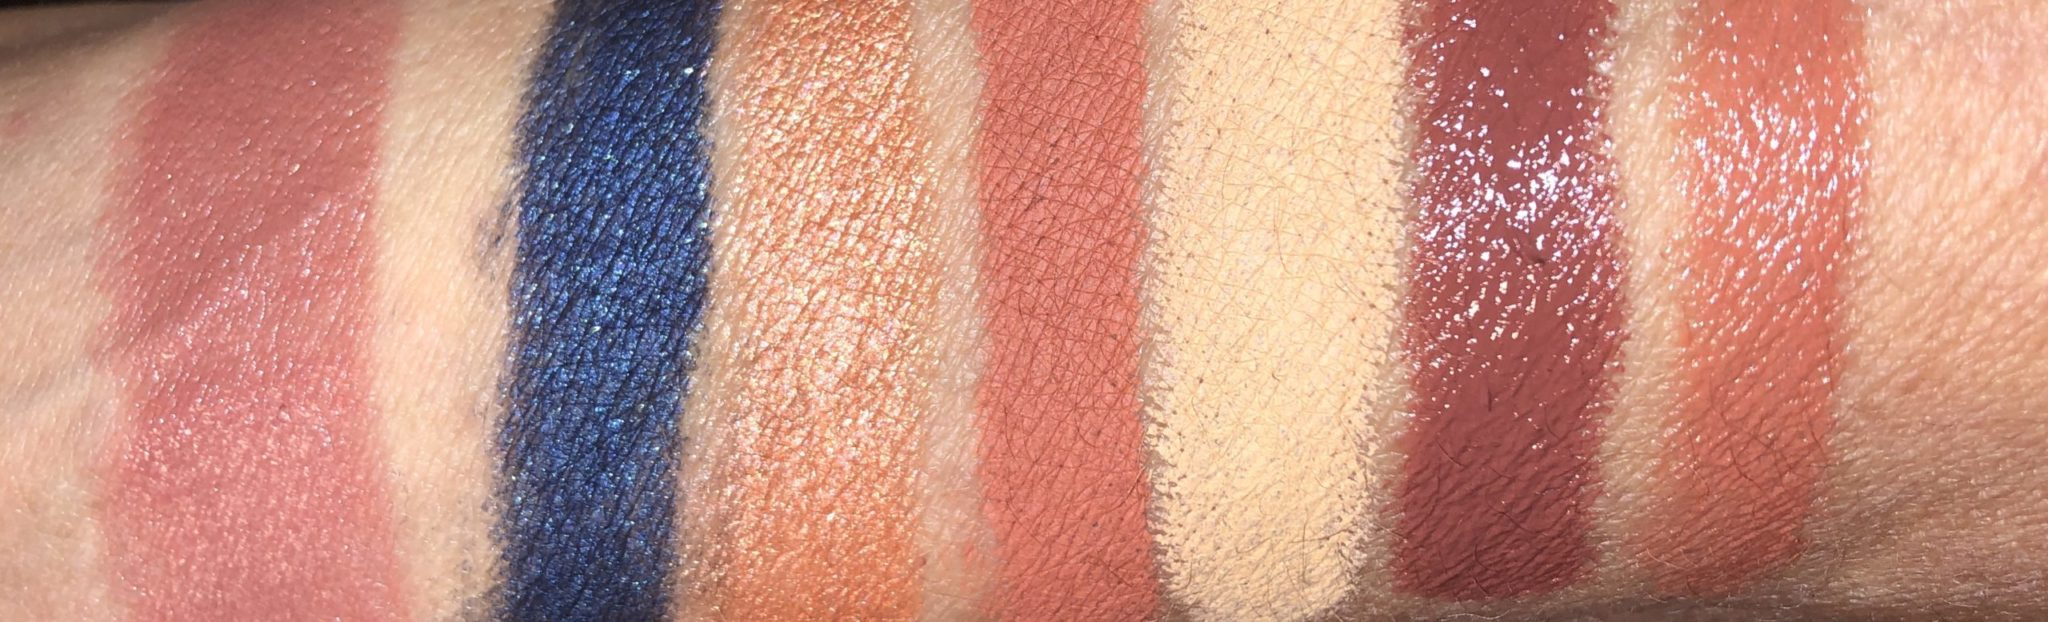 NUDE BEACH KIT SWATCHES